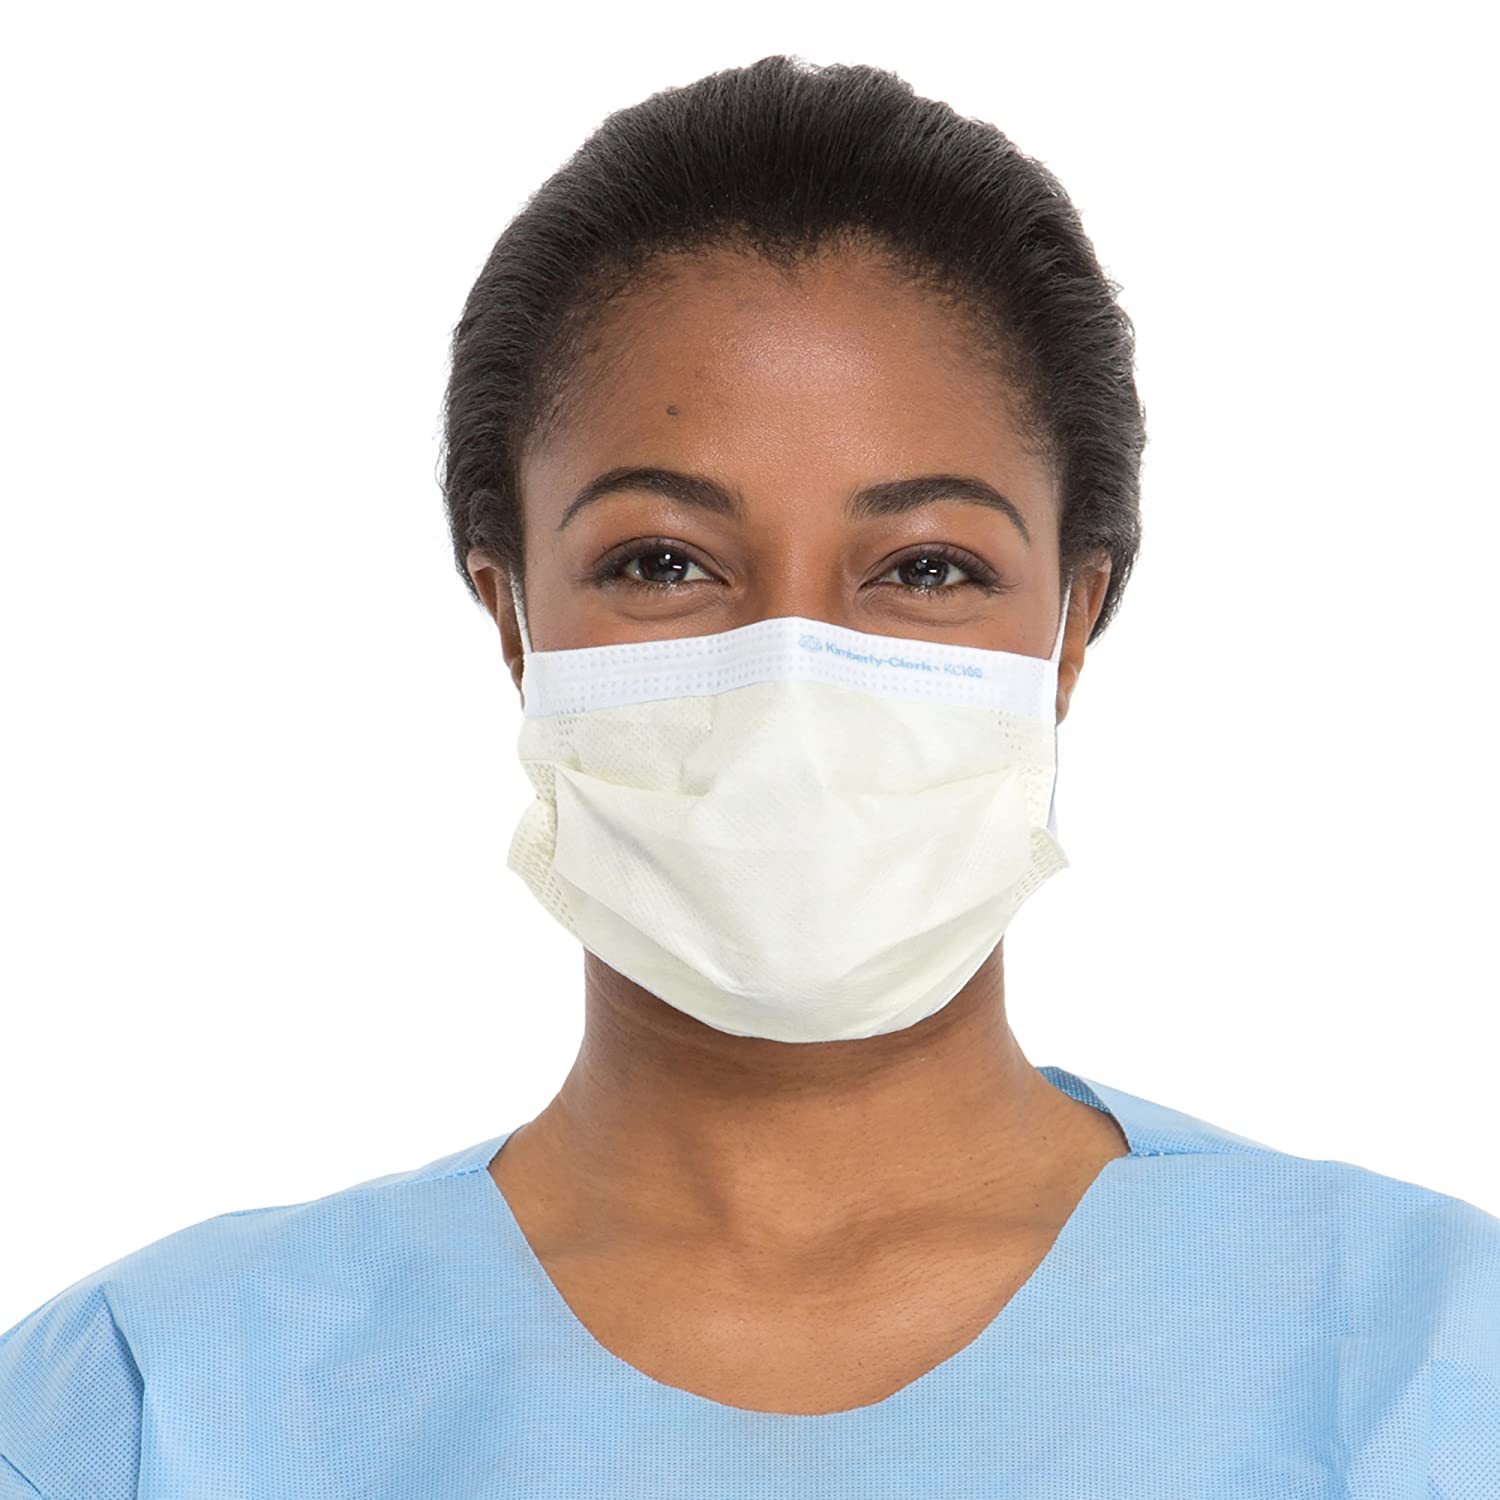 Kimberly-Clark 47117 Procedure Mask - Pleat Style (Pack of 50)